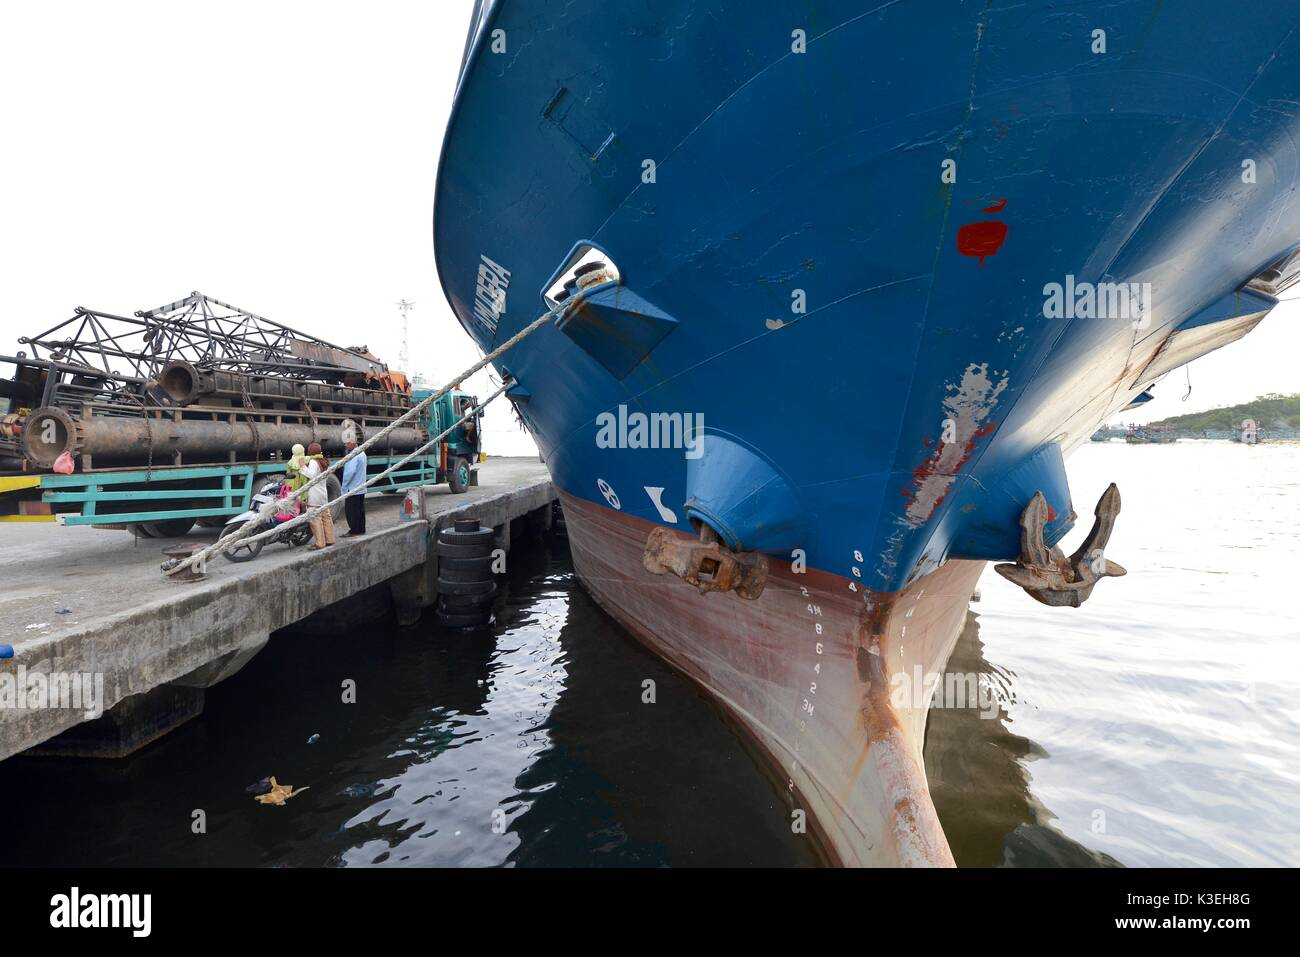 Commercial Shipping - Stock Image